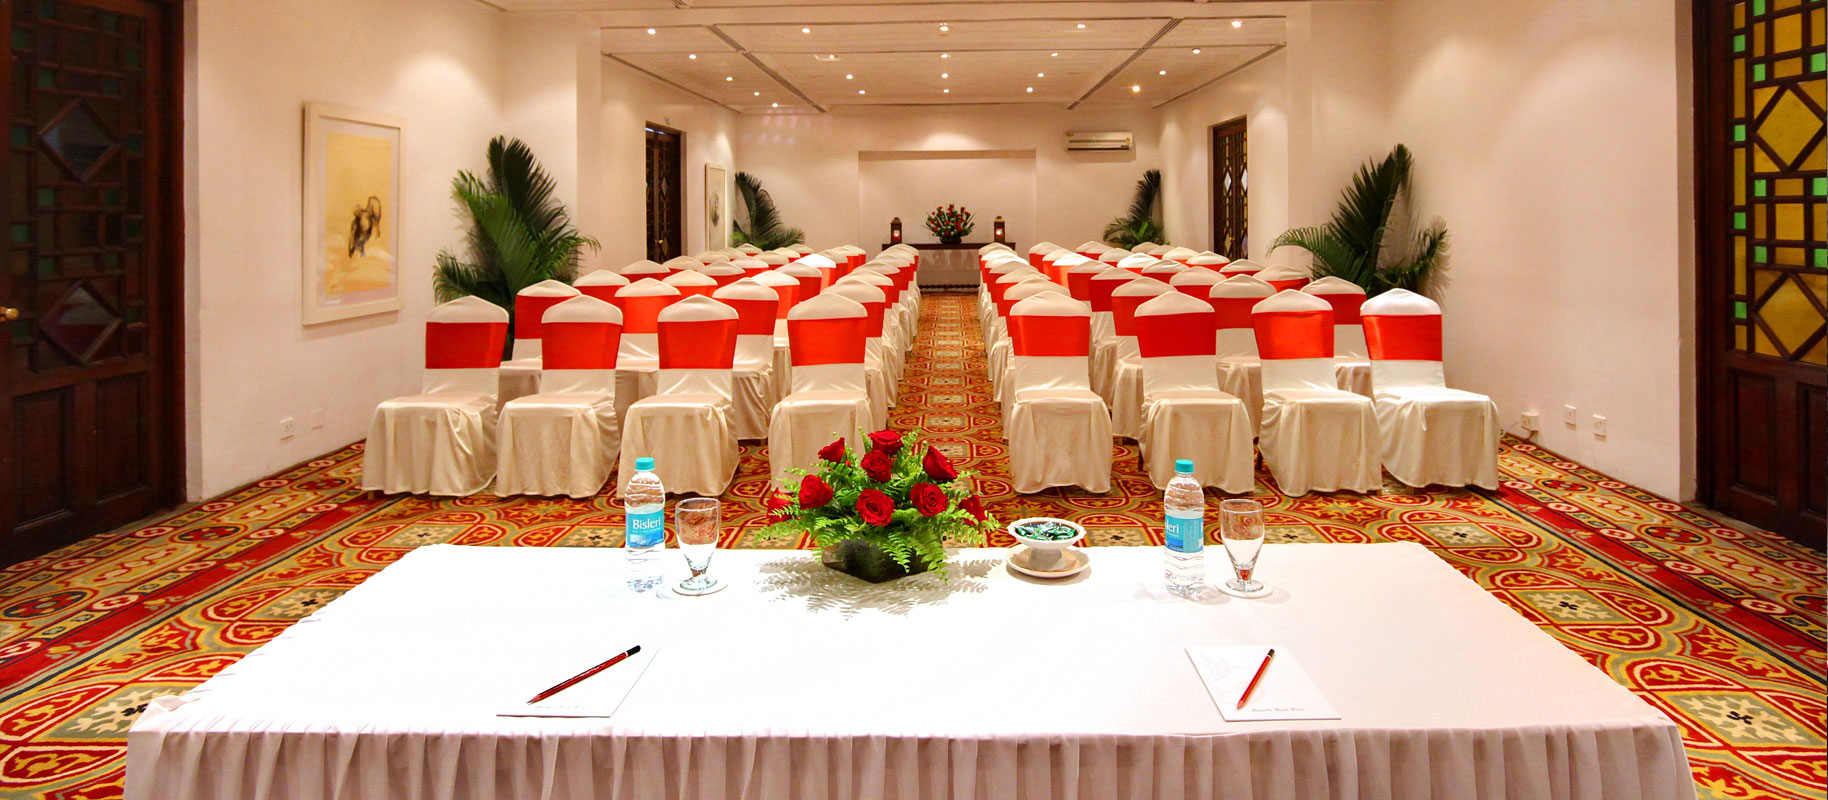 Conference_hall_with_theatre_style_seating